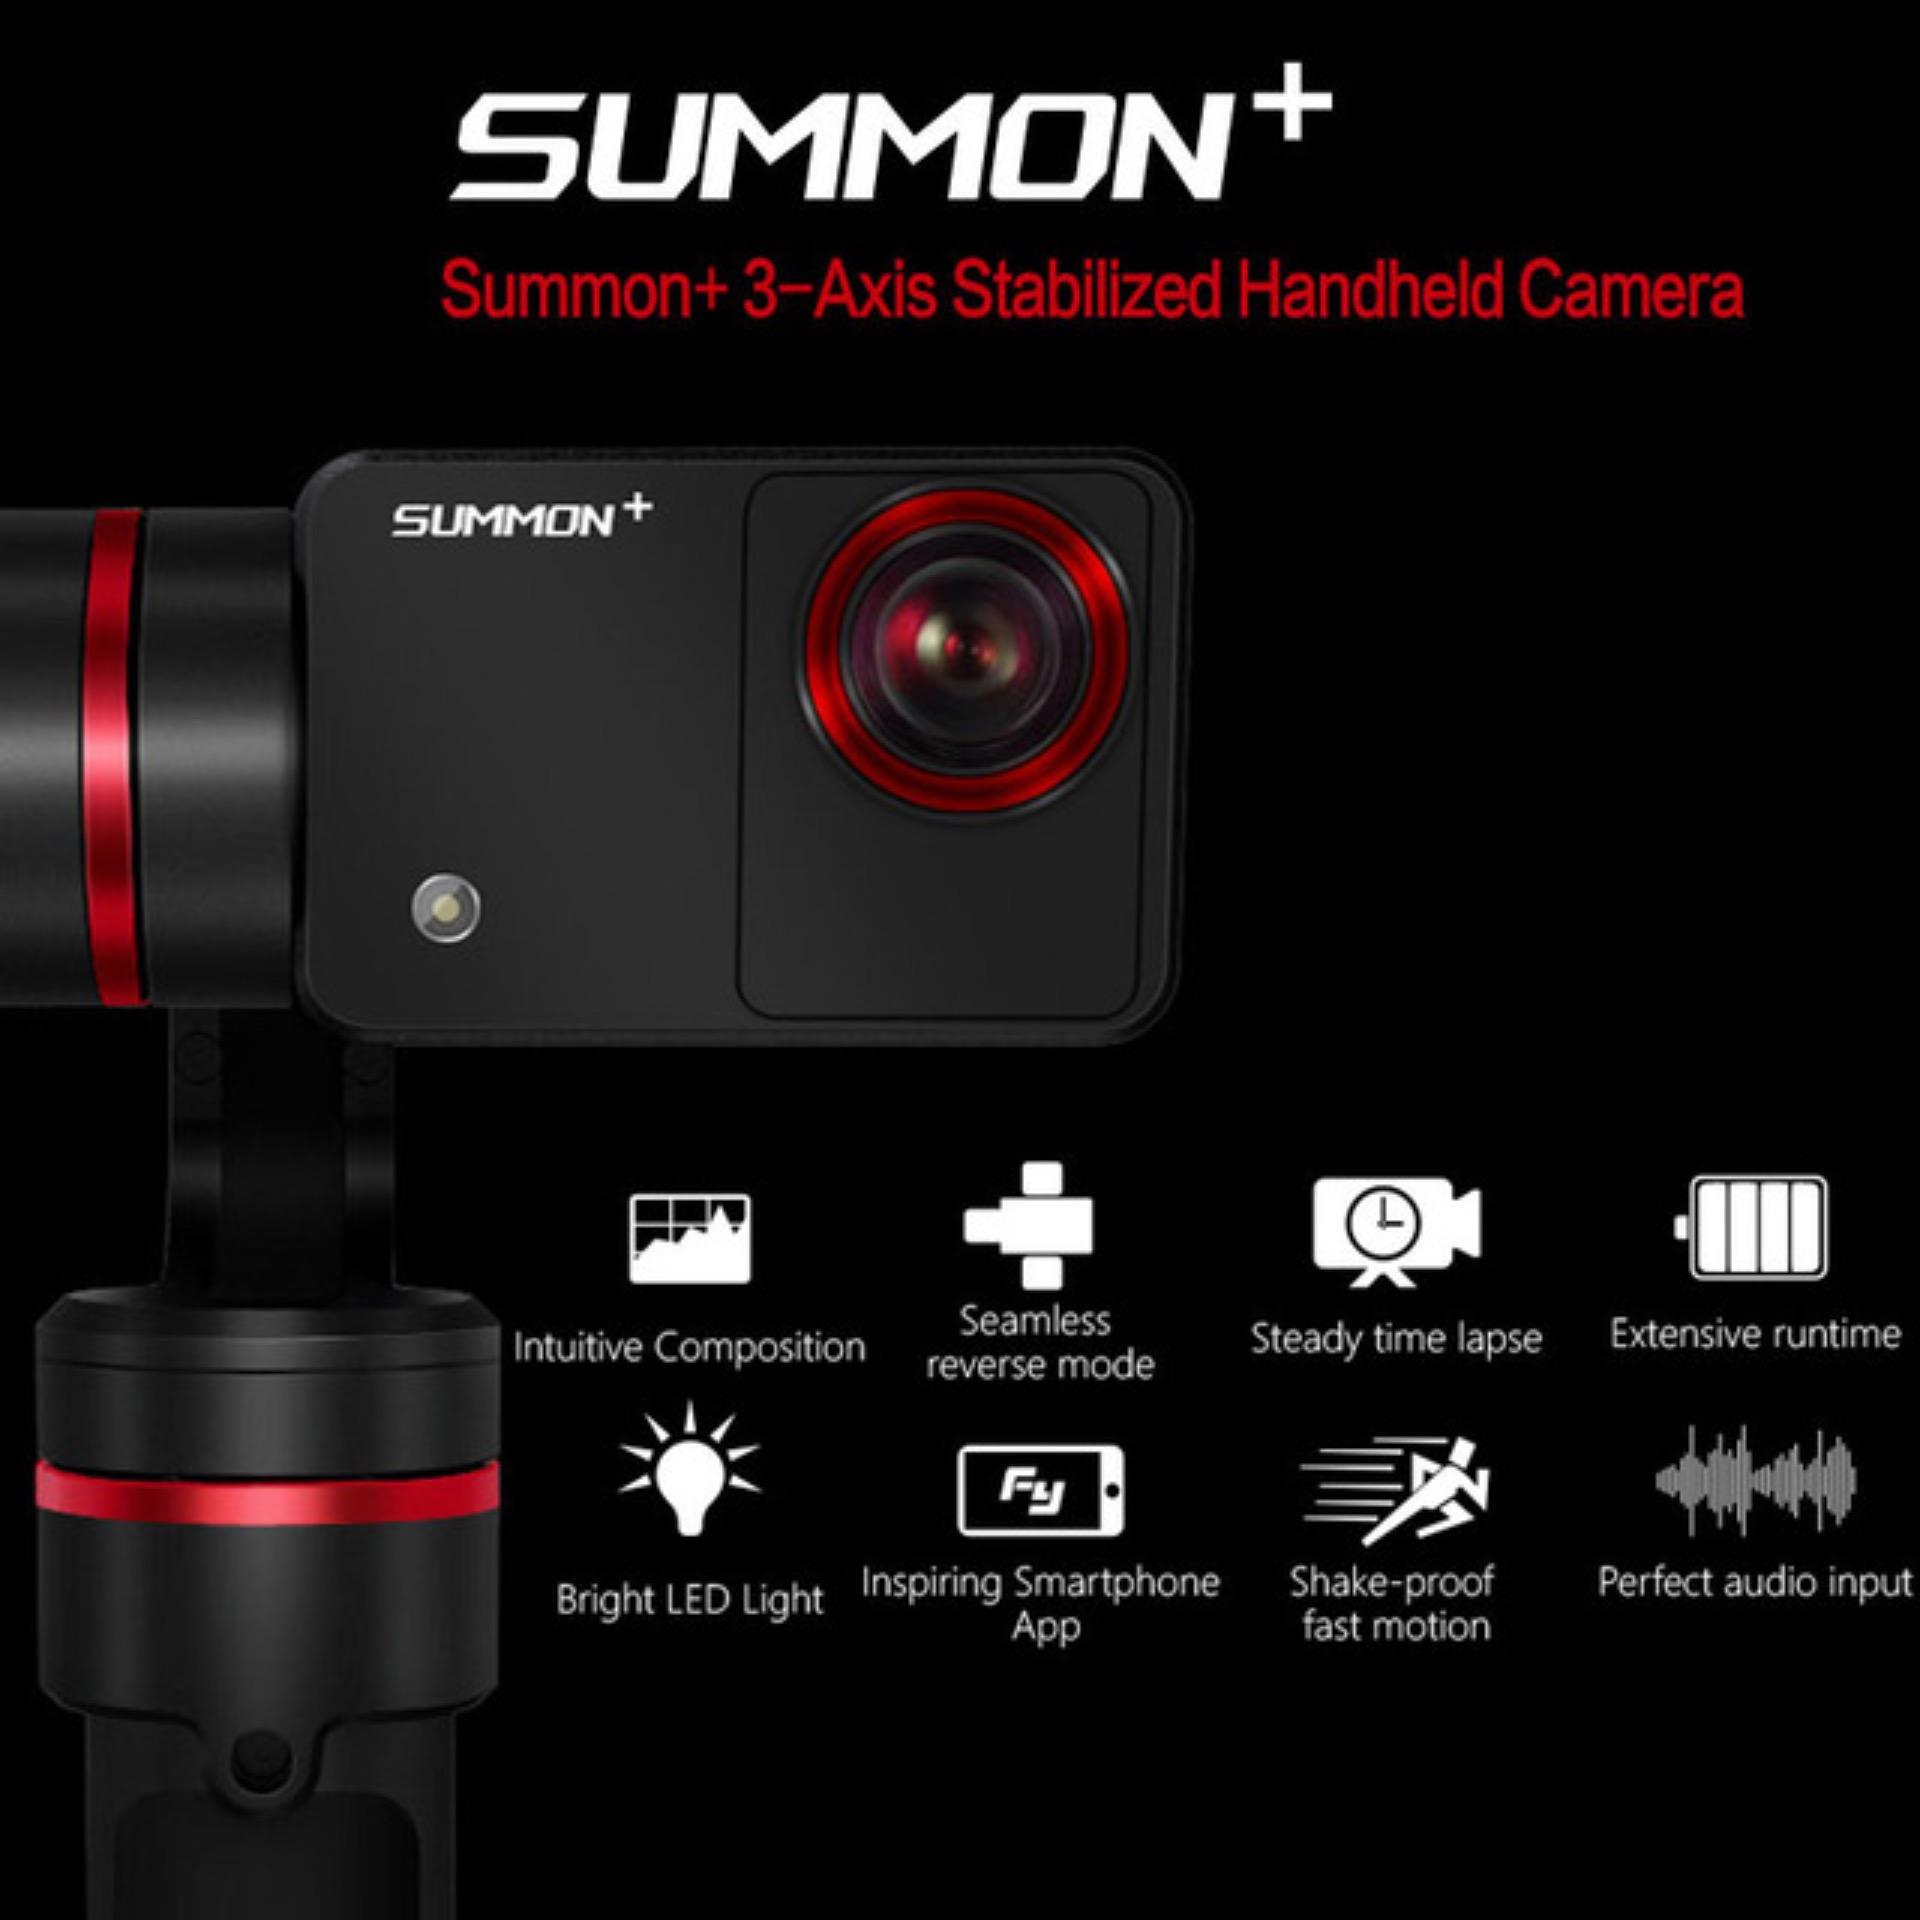 Feiyu Summon+ 4K Camera with 3-Axis Handheld Gimbal